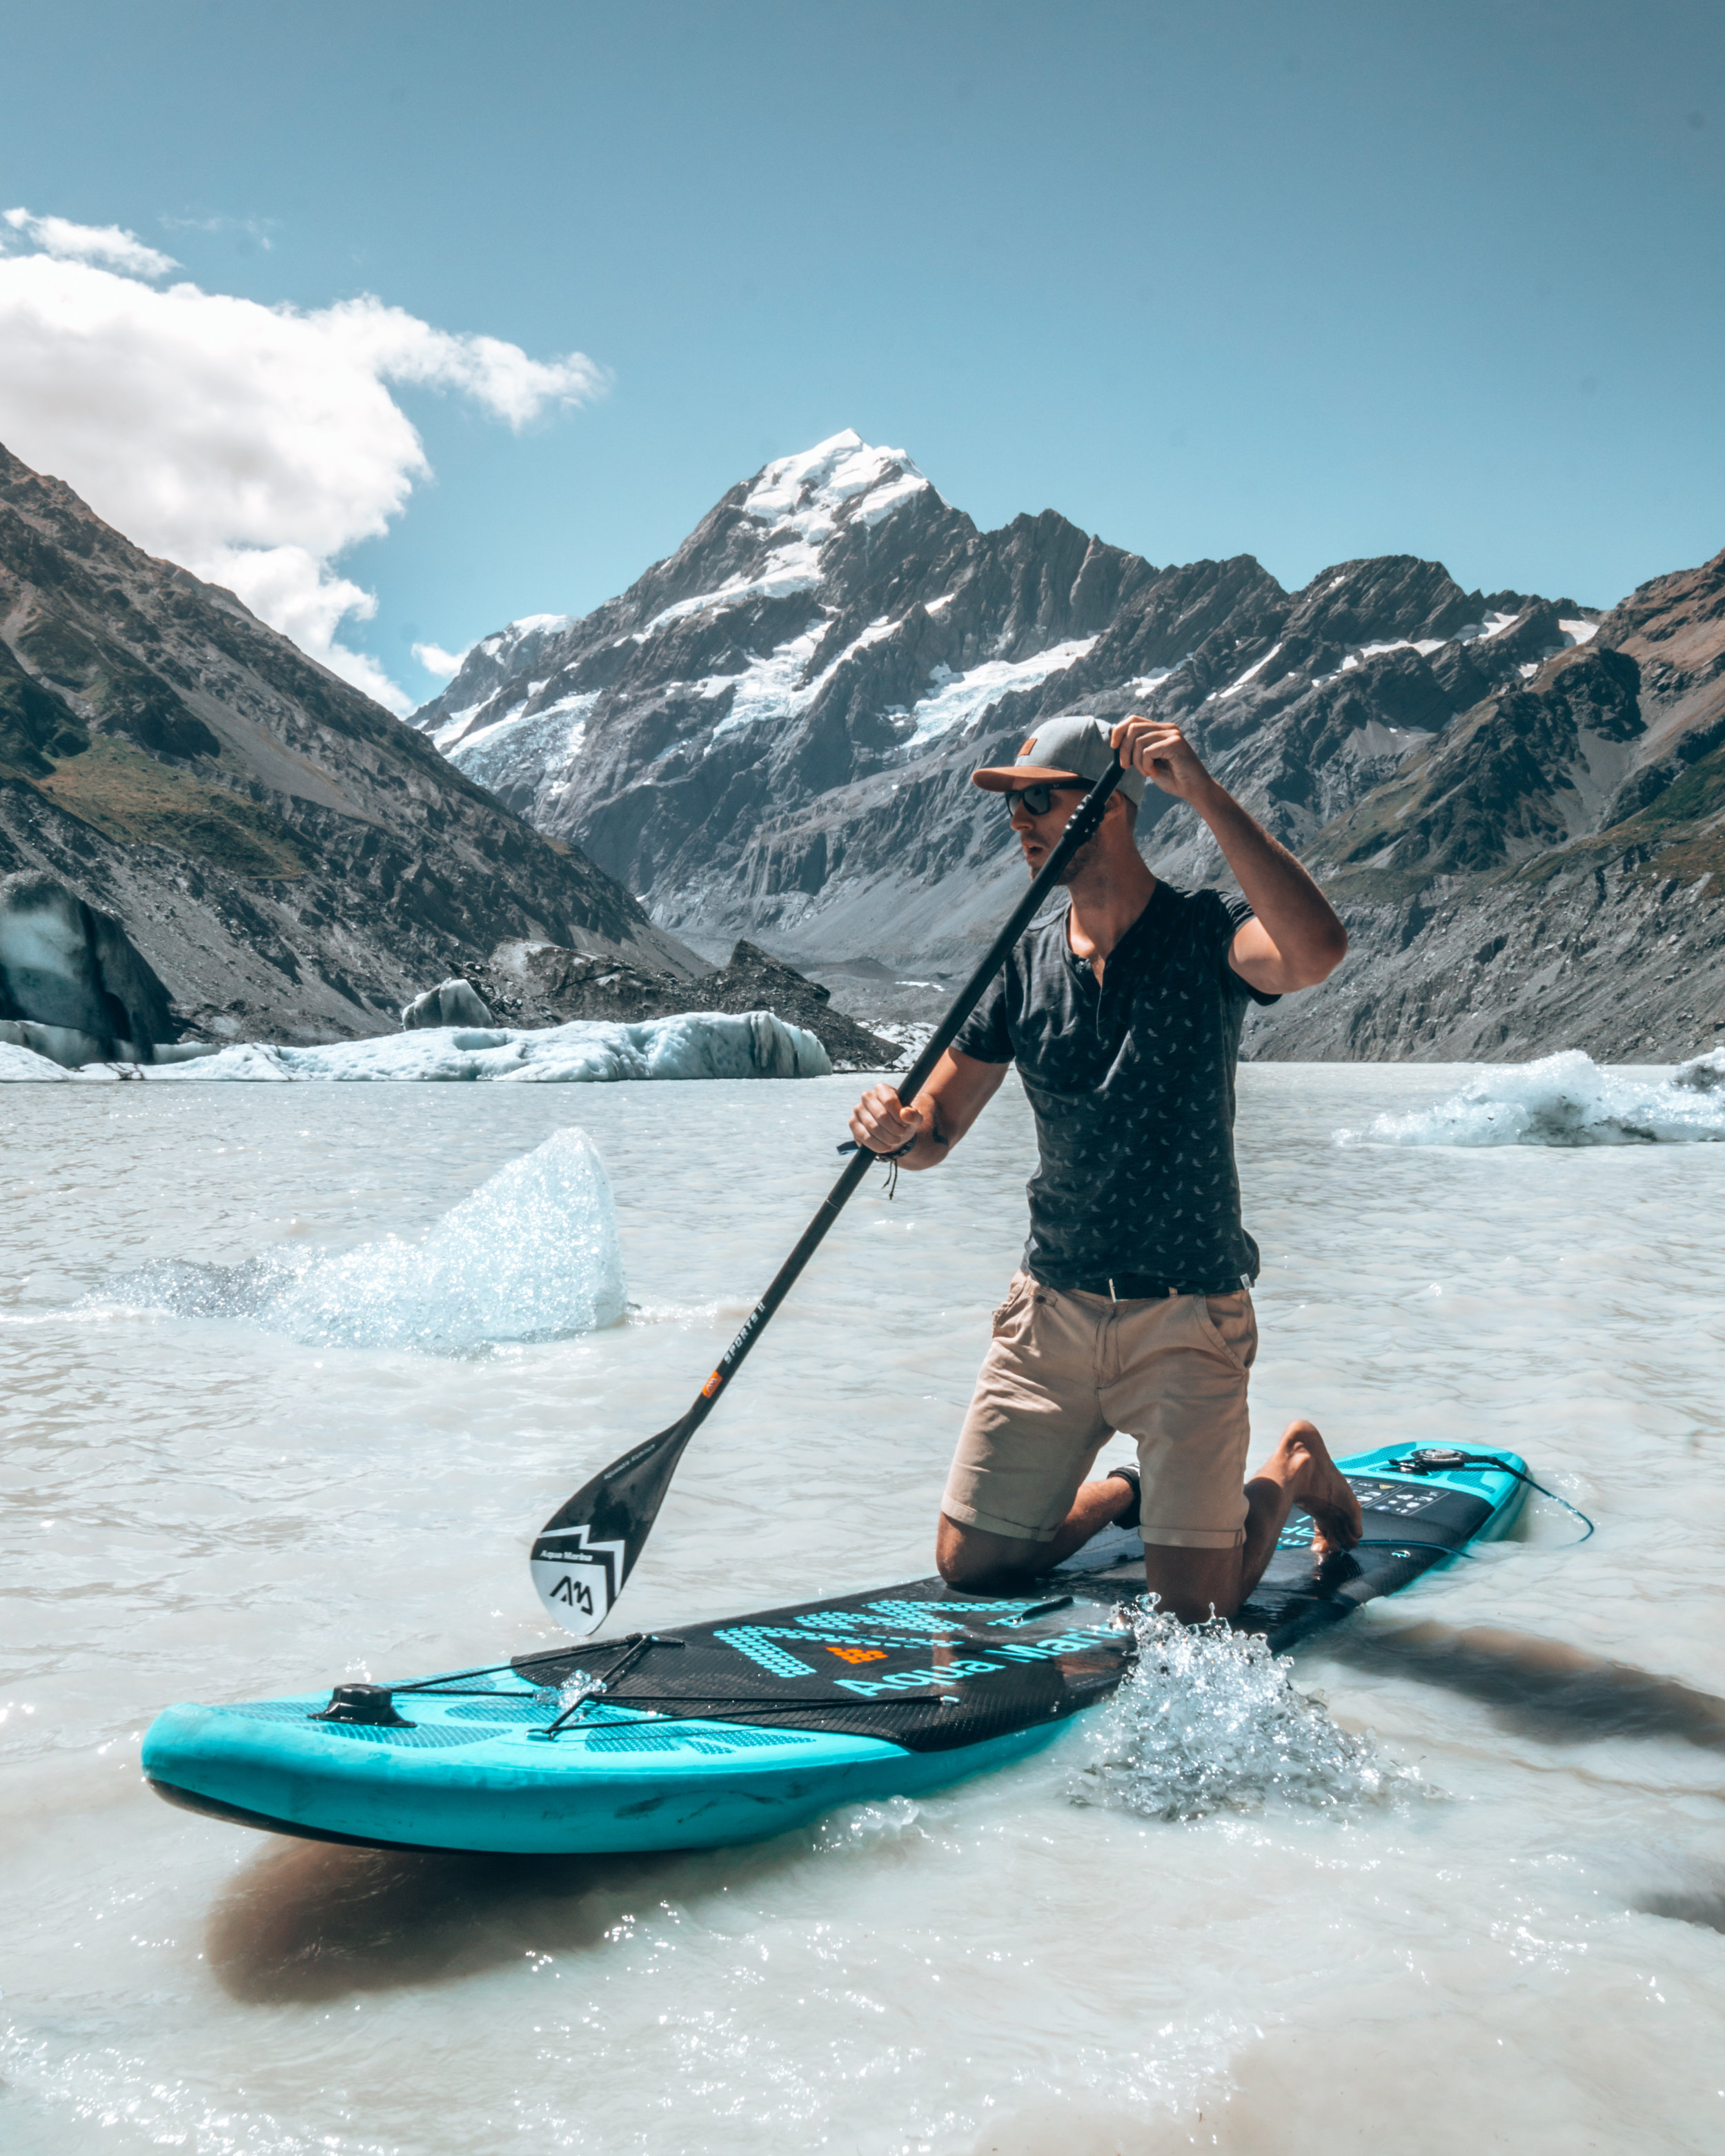 Paddleboarding with icebergs Hooker Lake best SUP spots New Zealand